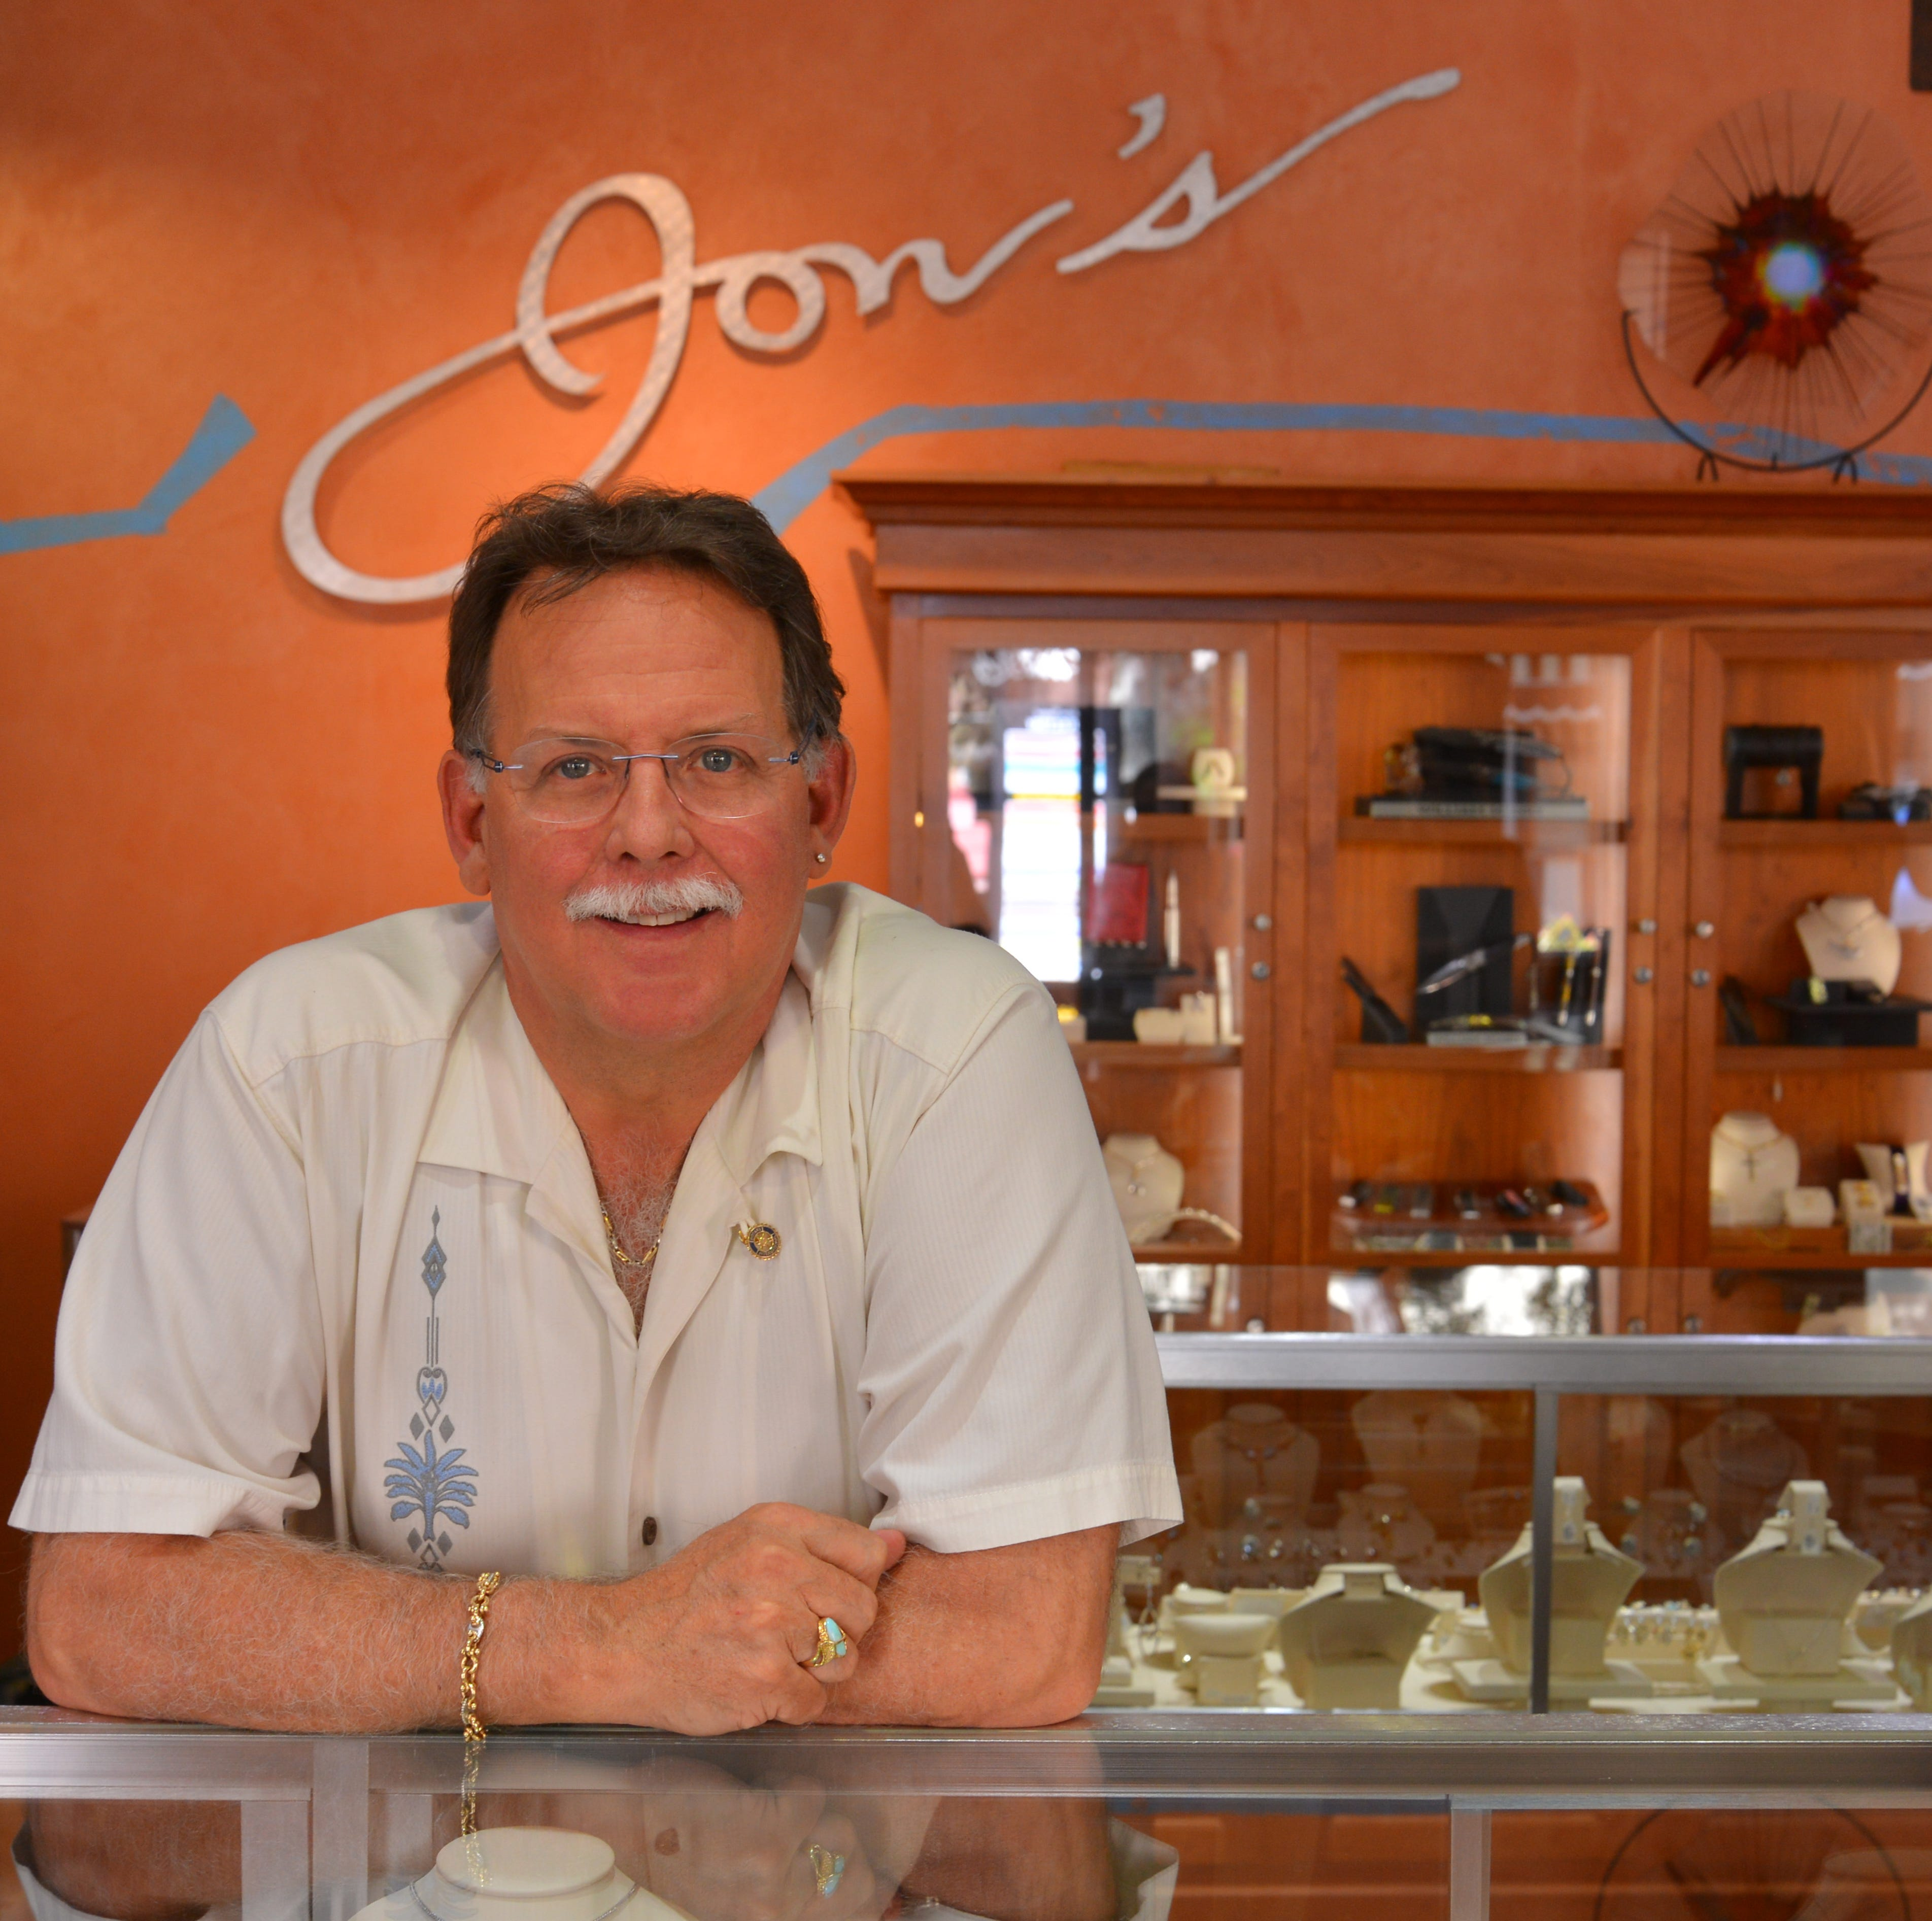 Business of the Year 2018 nominee: Jon's Fine Jewelry makes Brevard more beautiful, one charity at a time